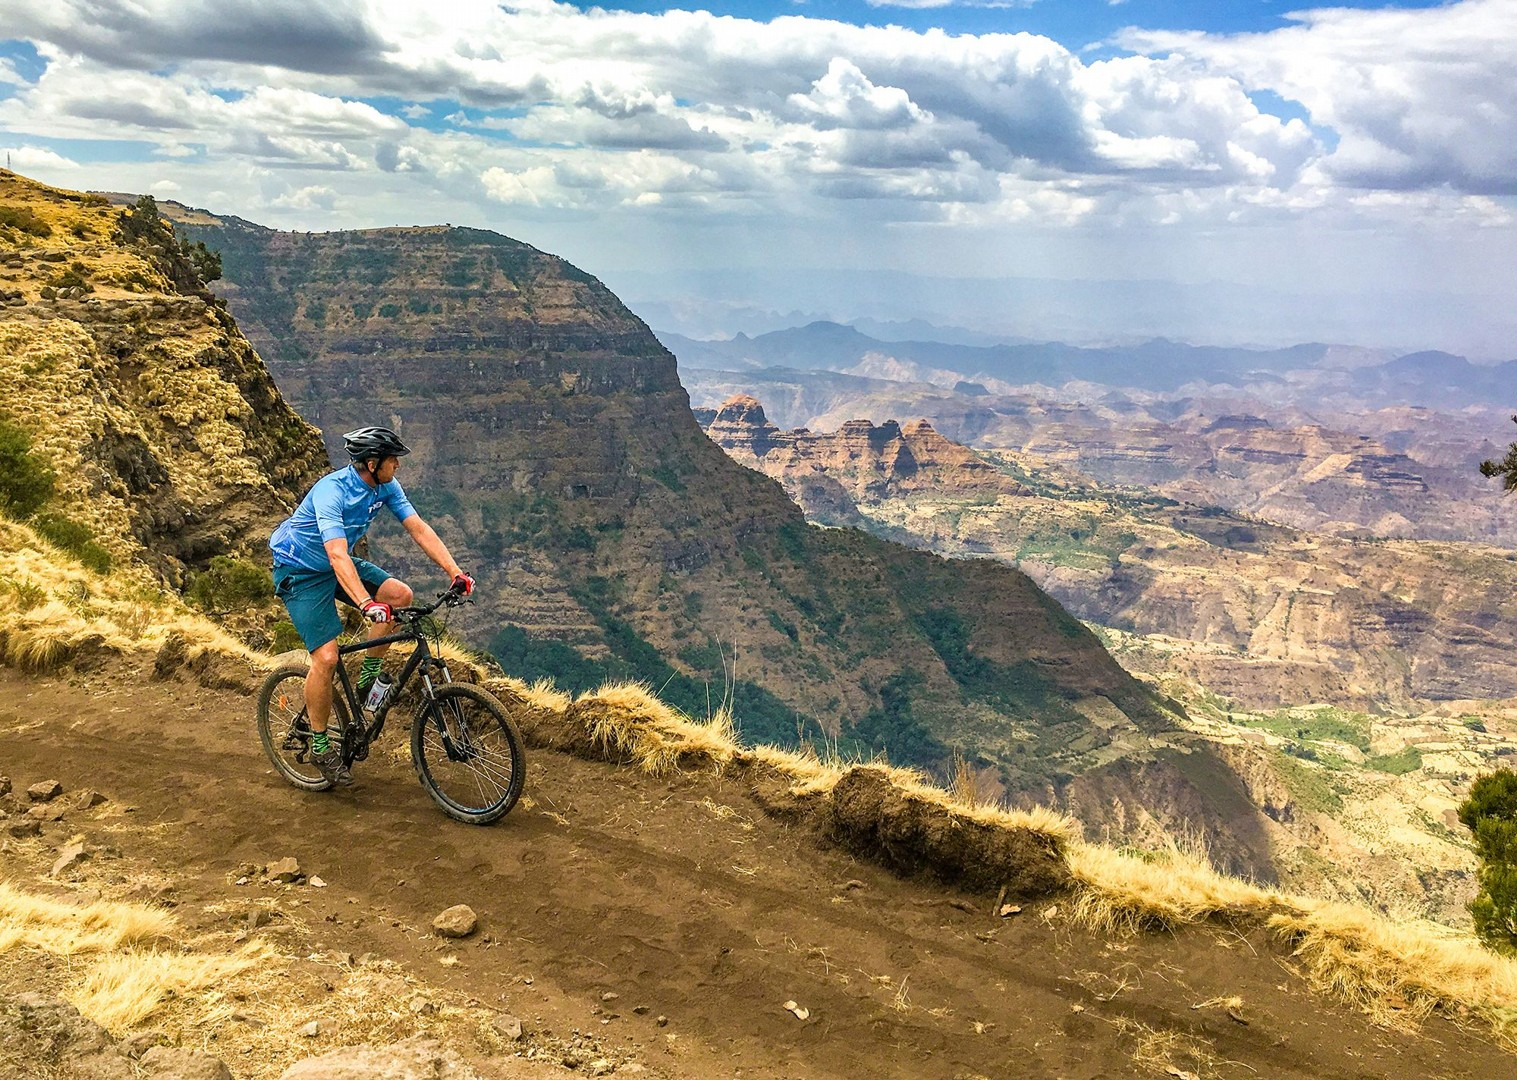 mountains-cycling-holiday-enchanting-ethiopia-trip-saddle-skedaddle.jpg - NEW! Ethiopia - Enchanting Ethiopia - Cycling Adventures